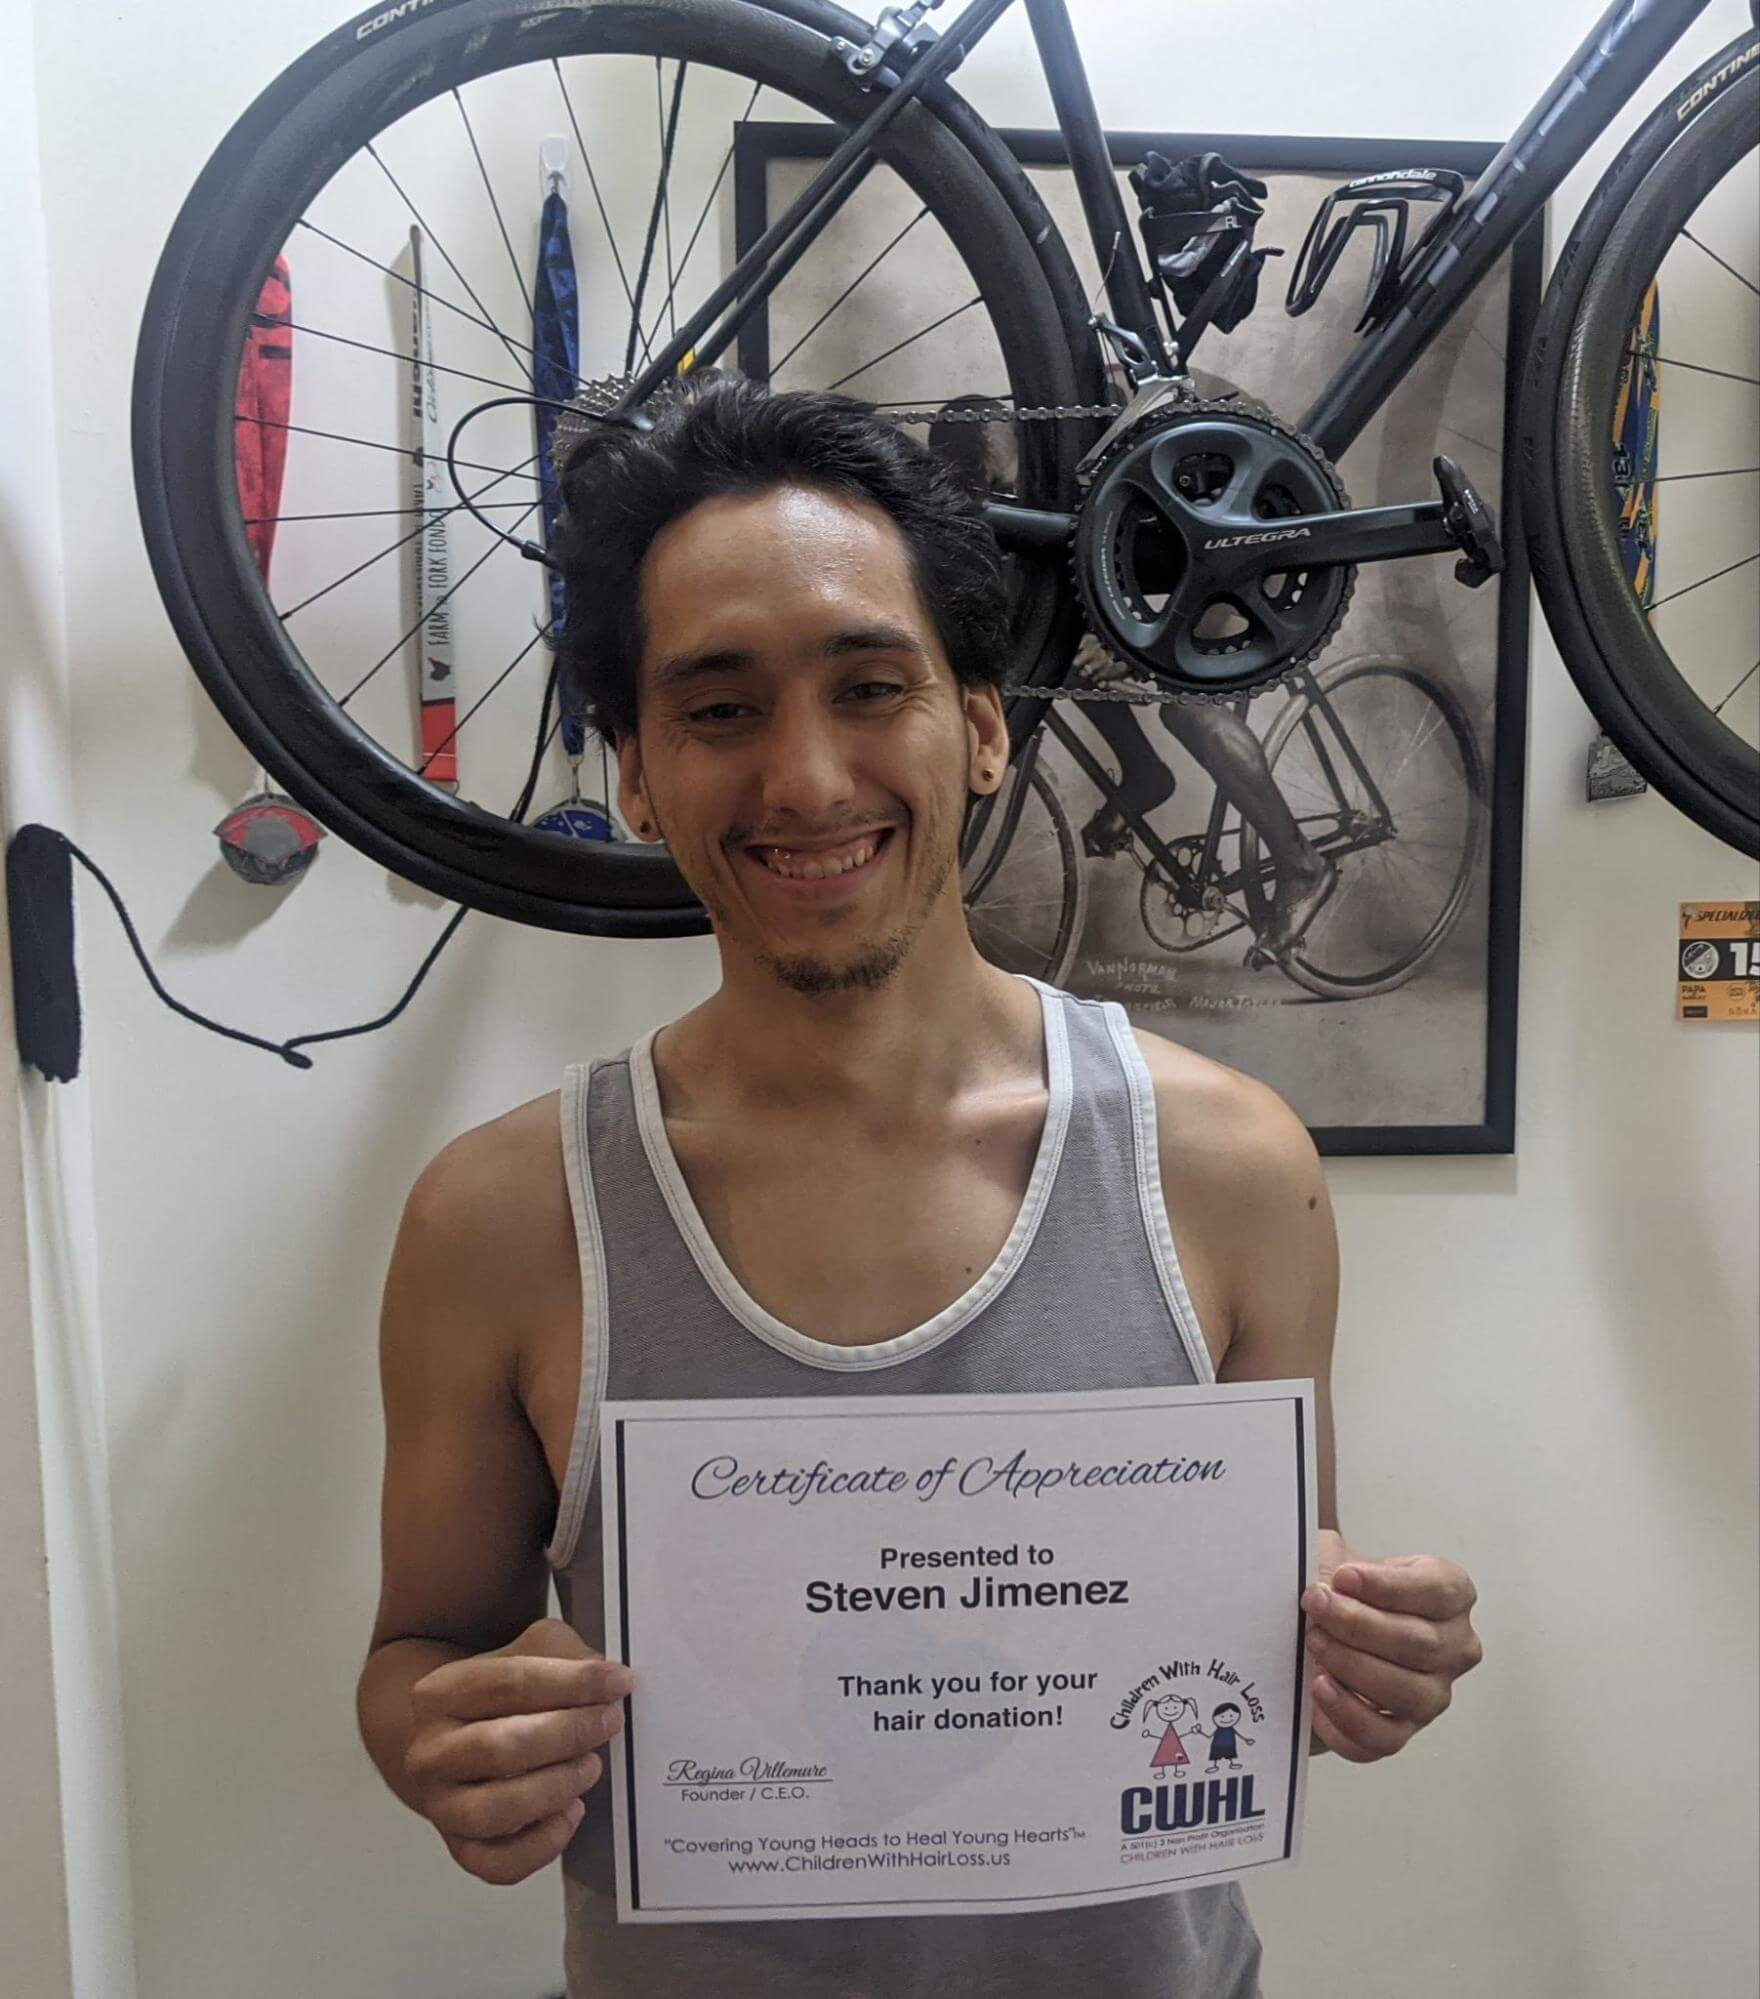 Steven holding his certificate from Children With Hair Loss